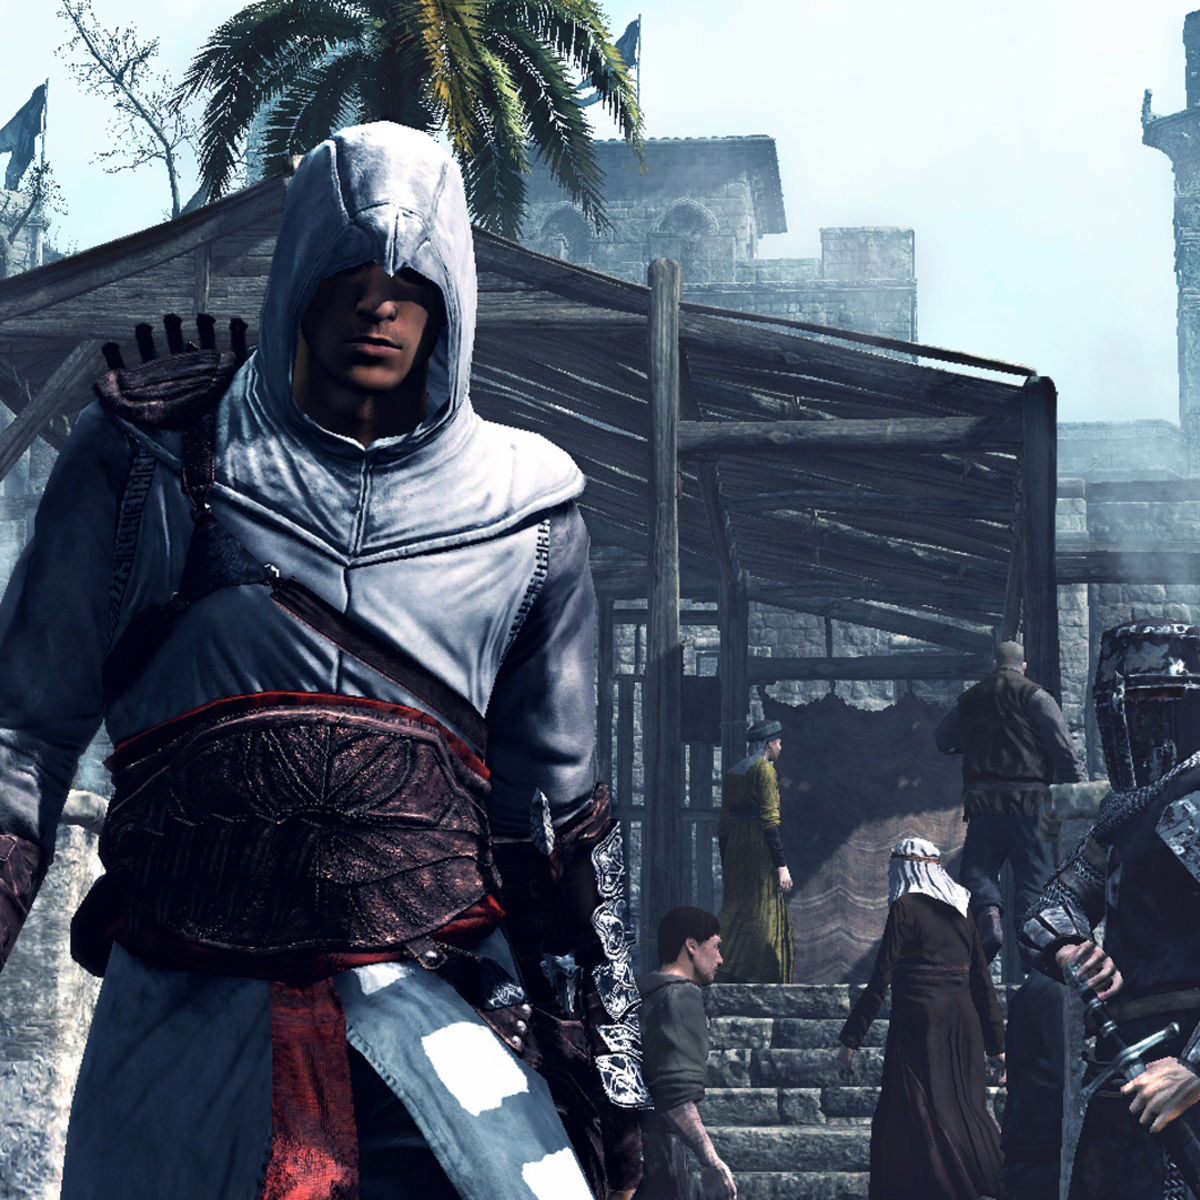 assassinscreed-img01.jpg